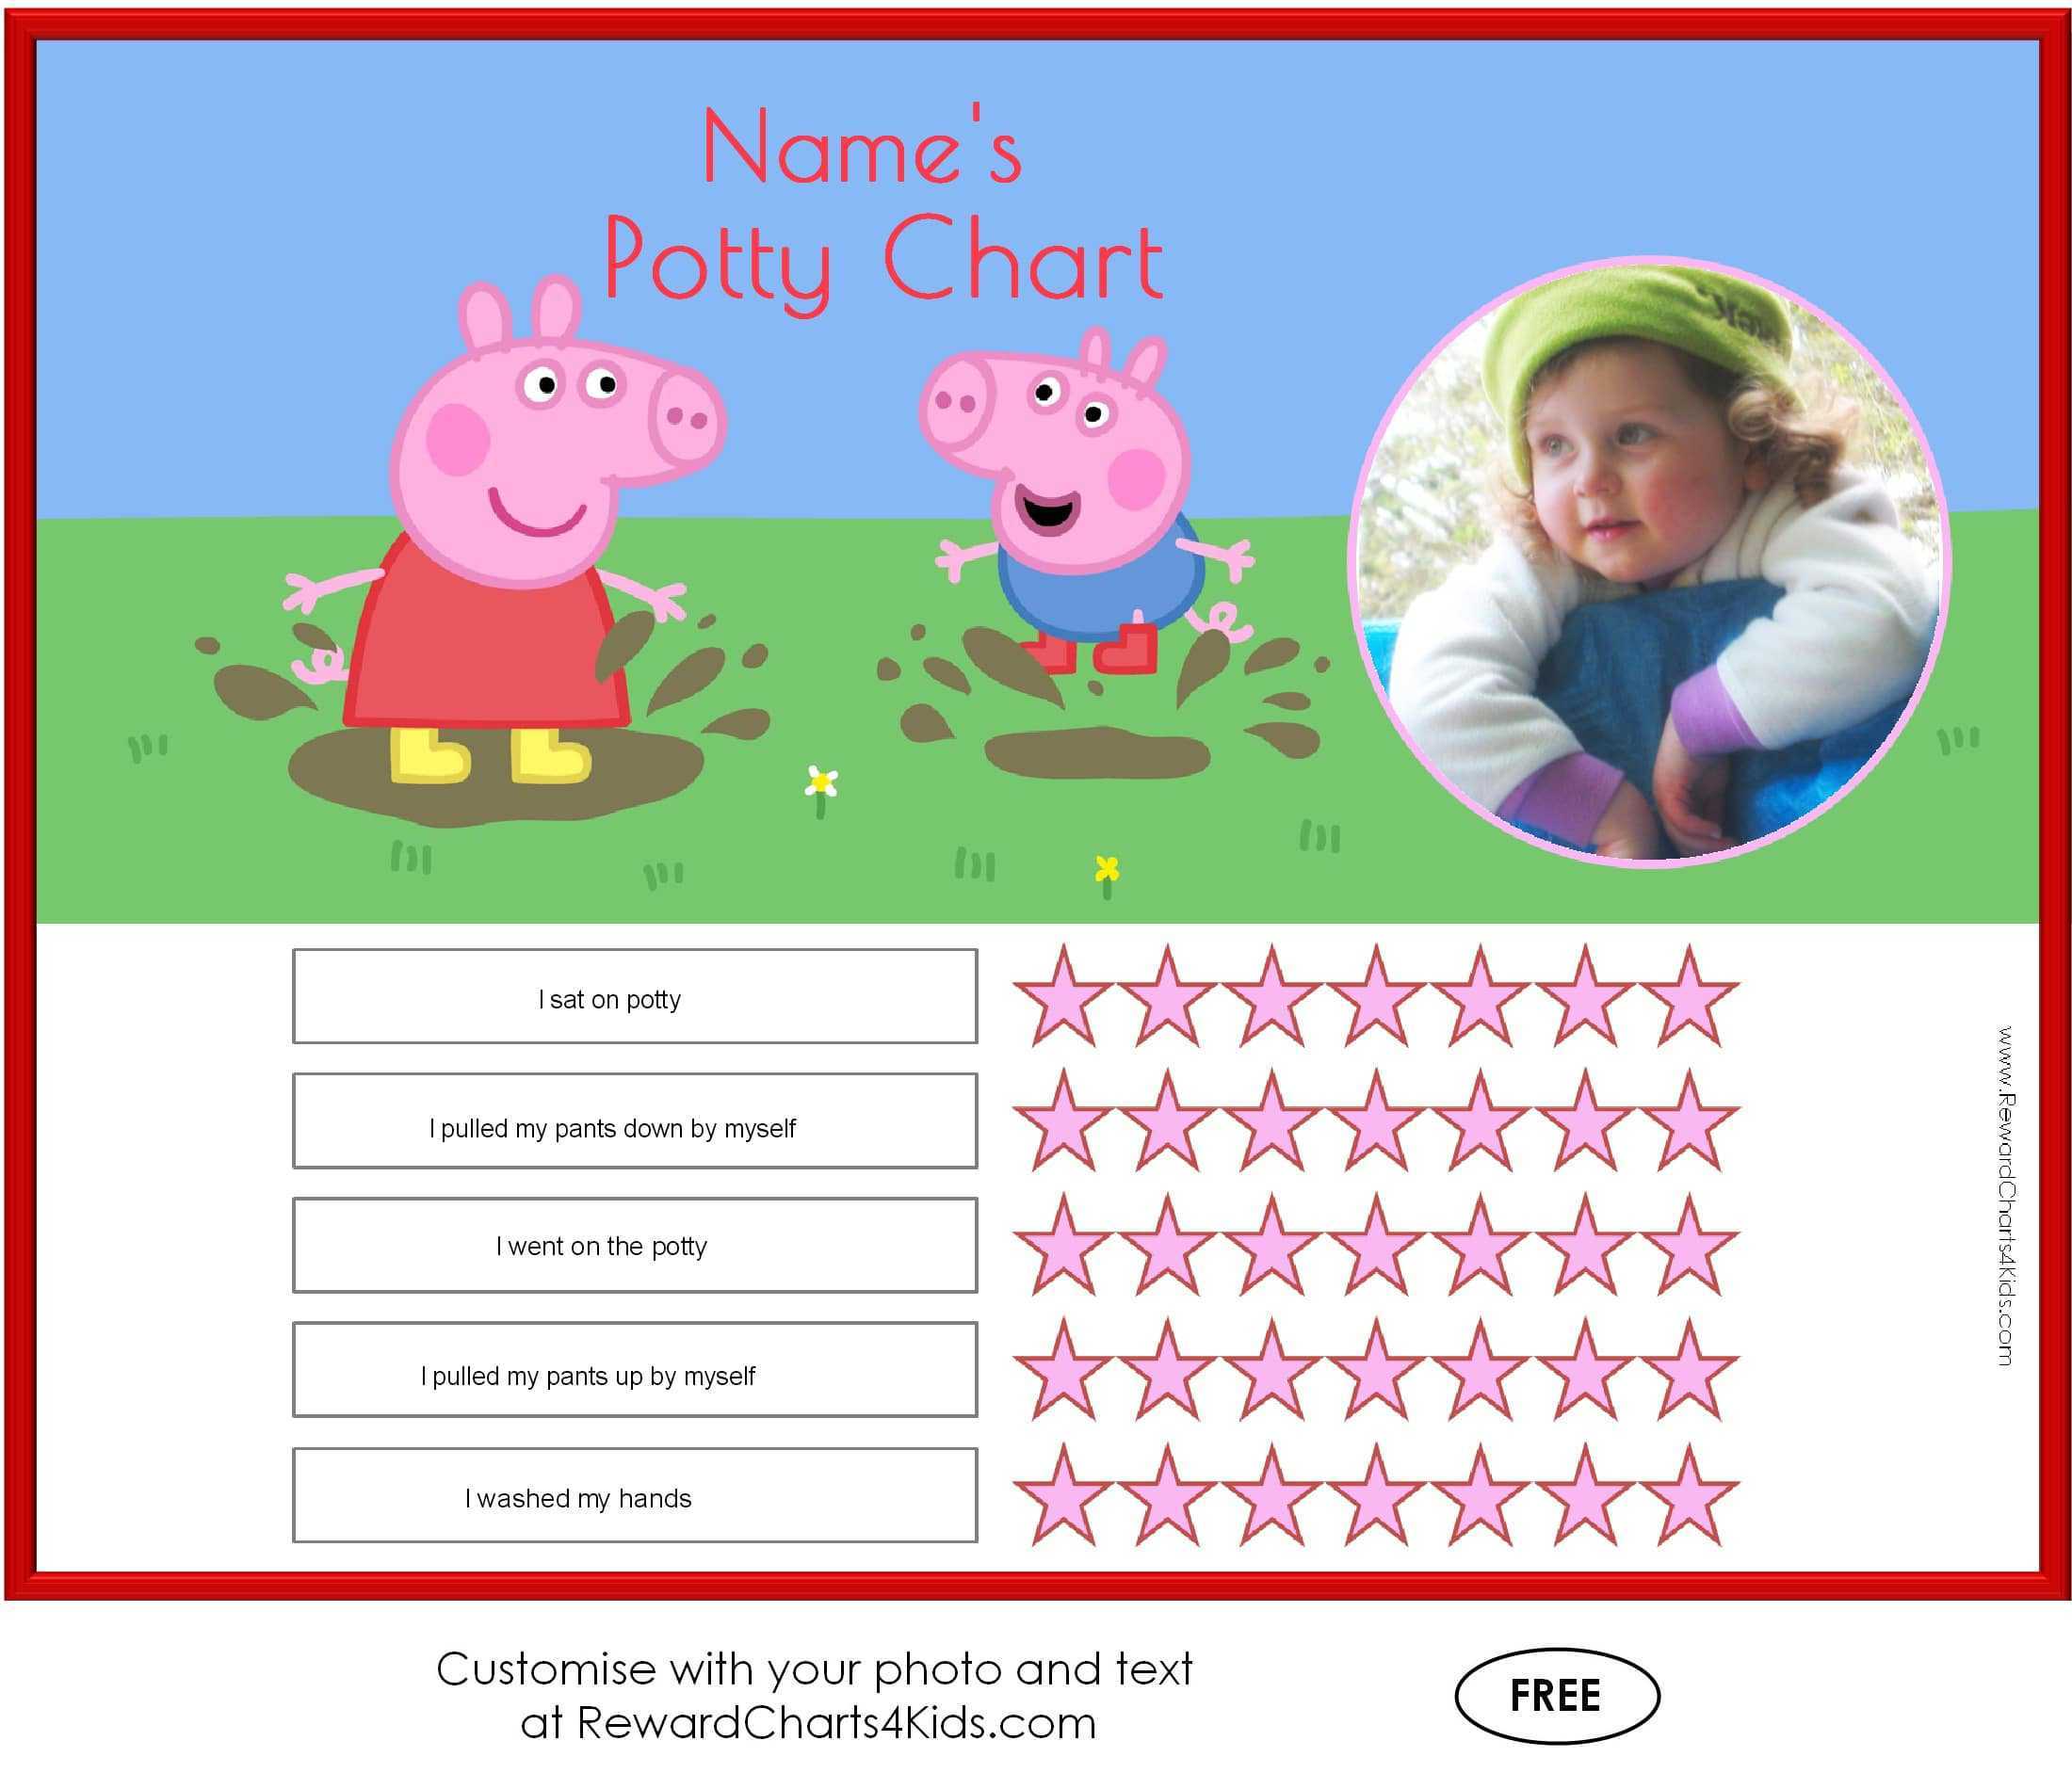 picture about Free Printable Potty Training Charts known as No cost Peppa Pig Potty Performing exercises Charts Customise with Your Image